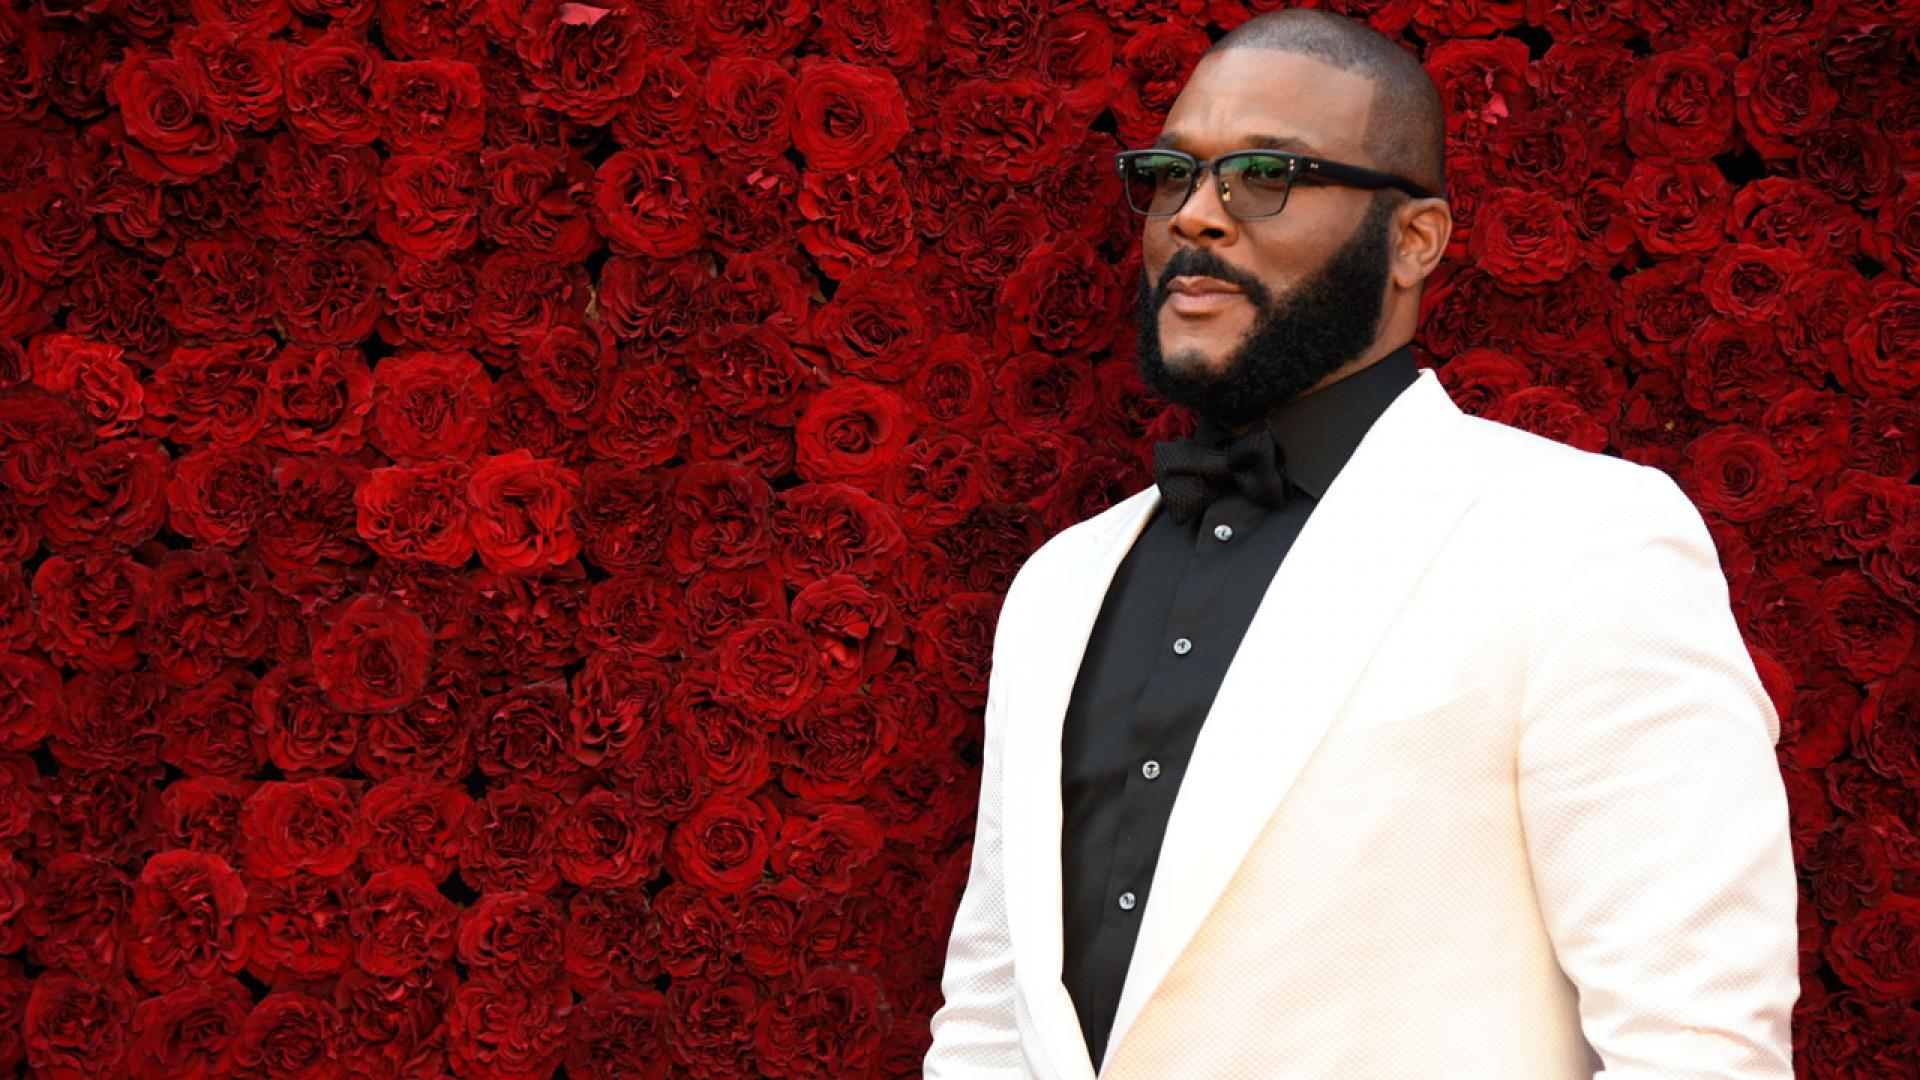 Tyler Perry Makes History As First Black Person to Own Major Film Studio